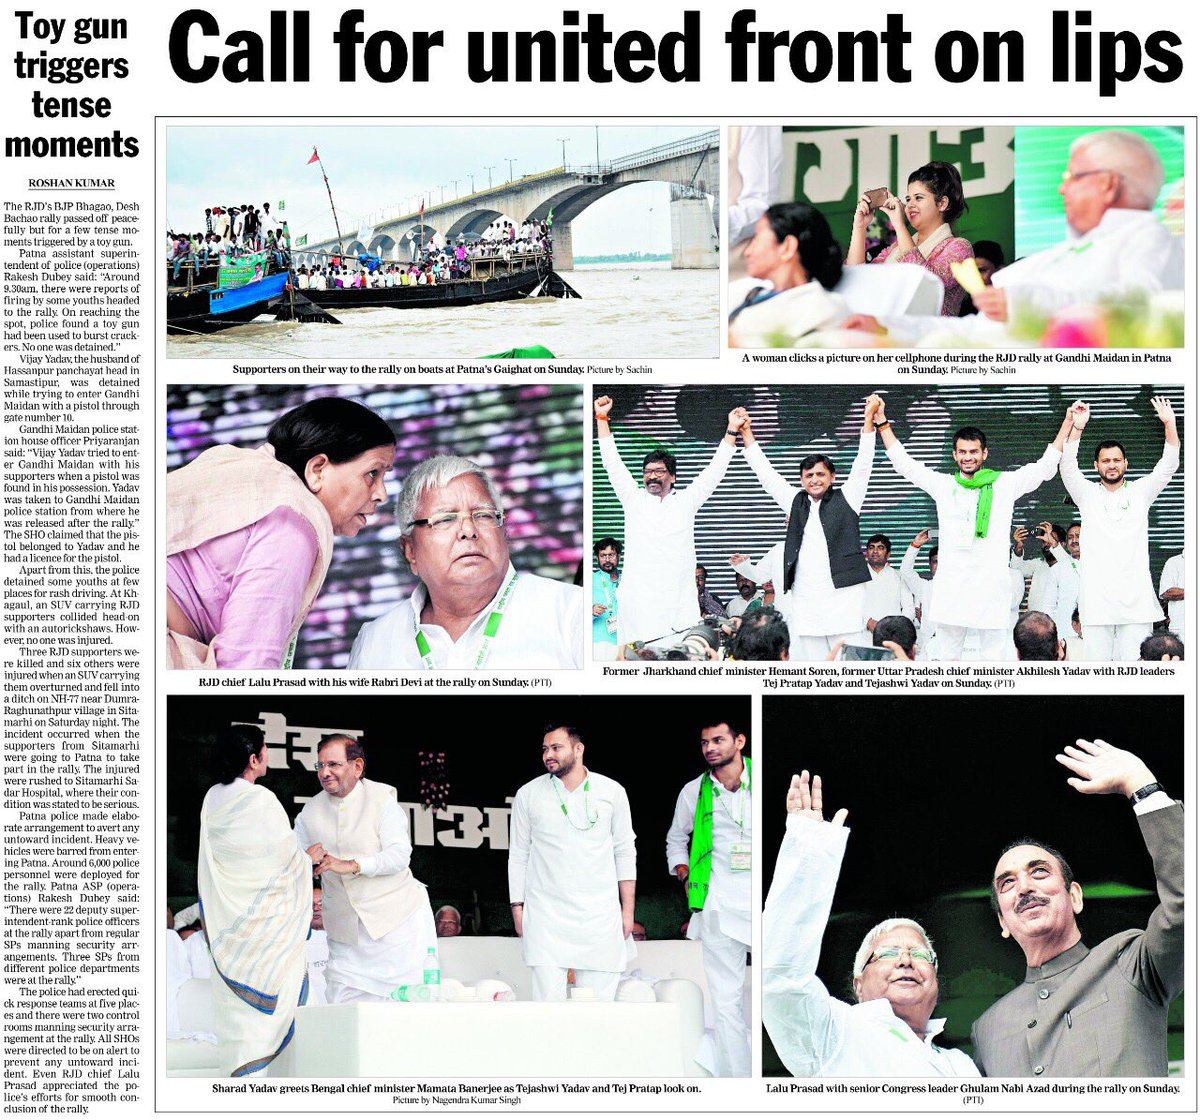 """Lalu Prasad Yadav on Twitter: """"We will fight and we will conquer. https://t.co/MOUSkoVJJ4"""""""